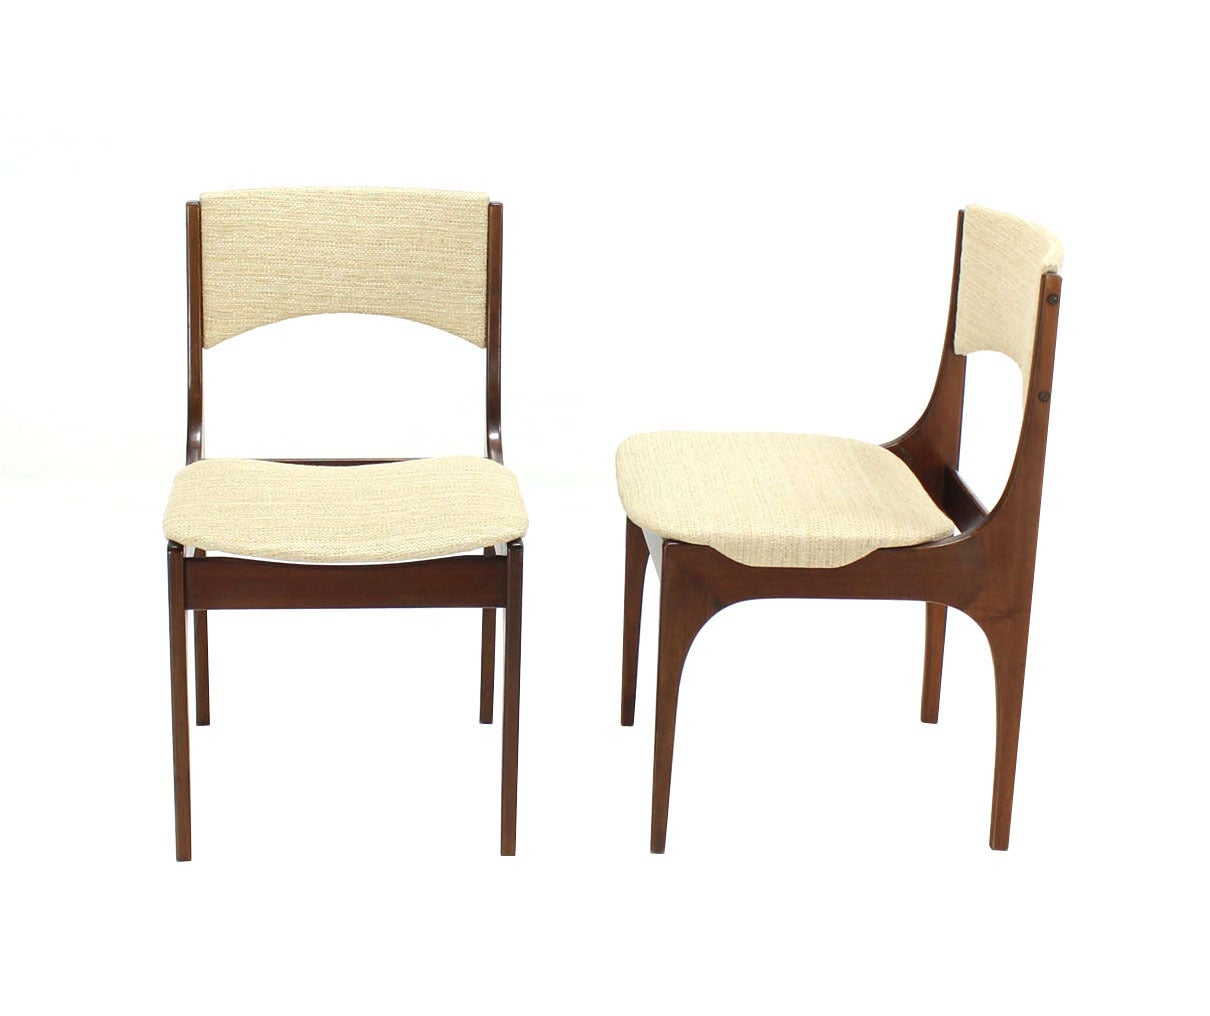 Modern dining chairs sale modern contemporary dining chairs box of 4 clearance sale ebay six - Contemporary dining furniture sale ...